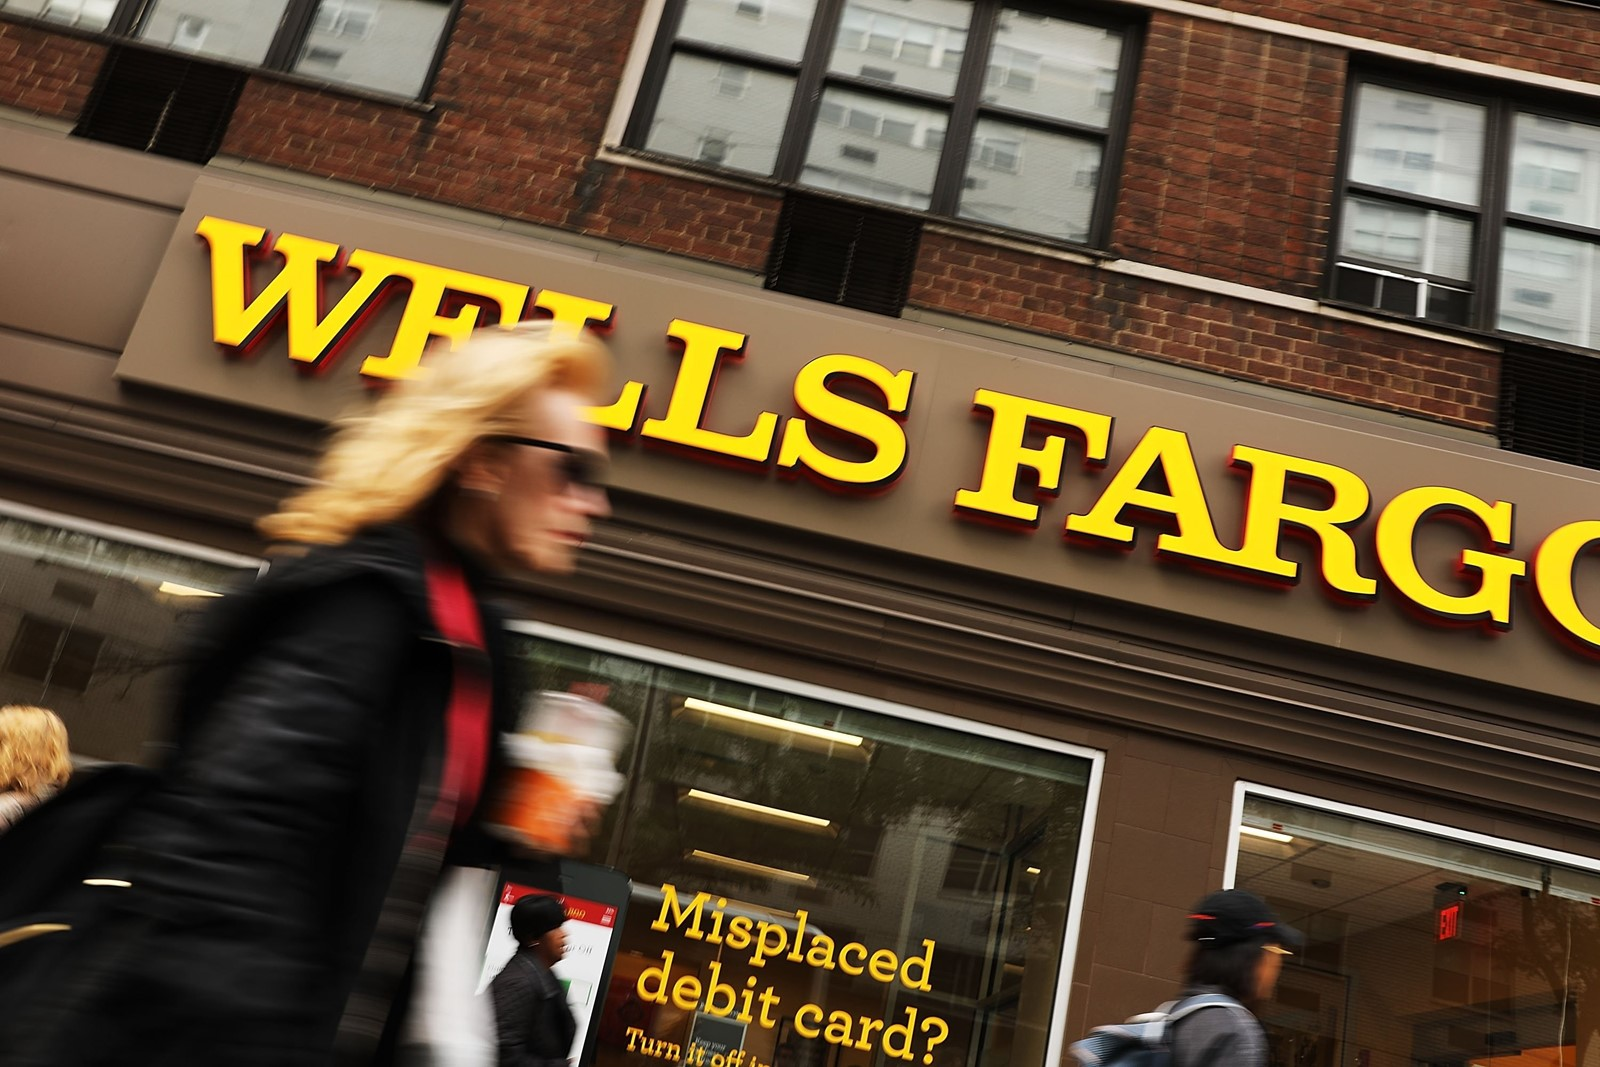 Print More Wells Fargo fallout Federal regulator may issue